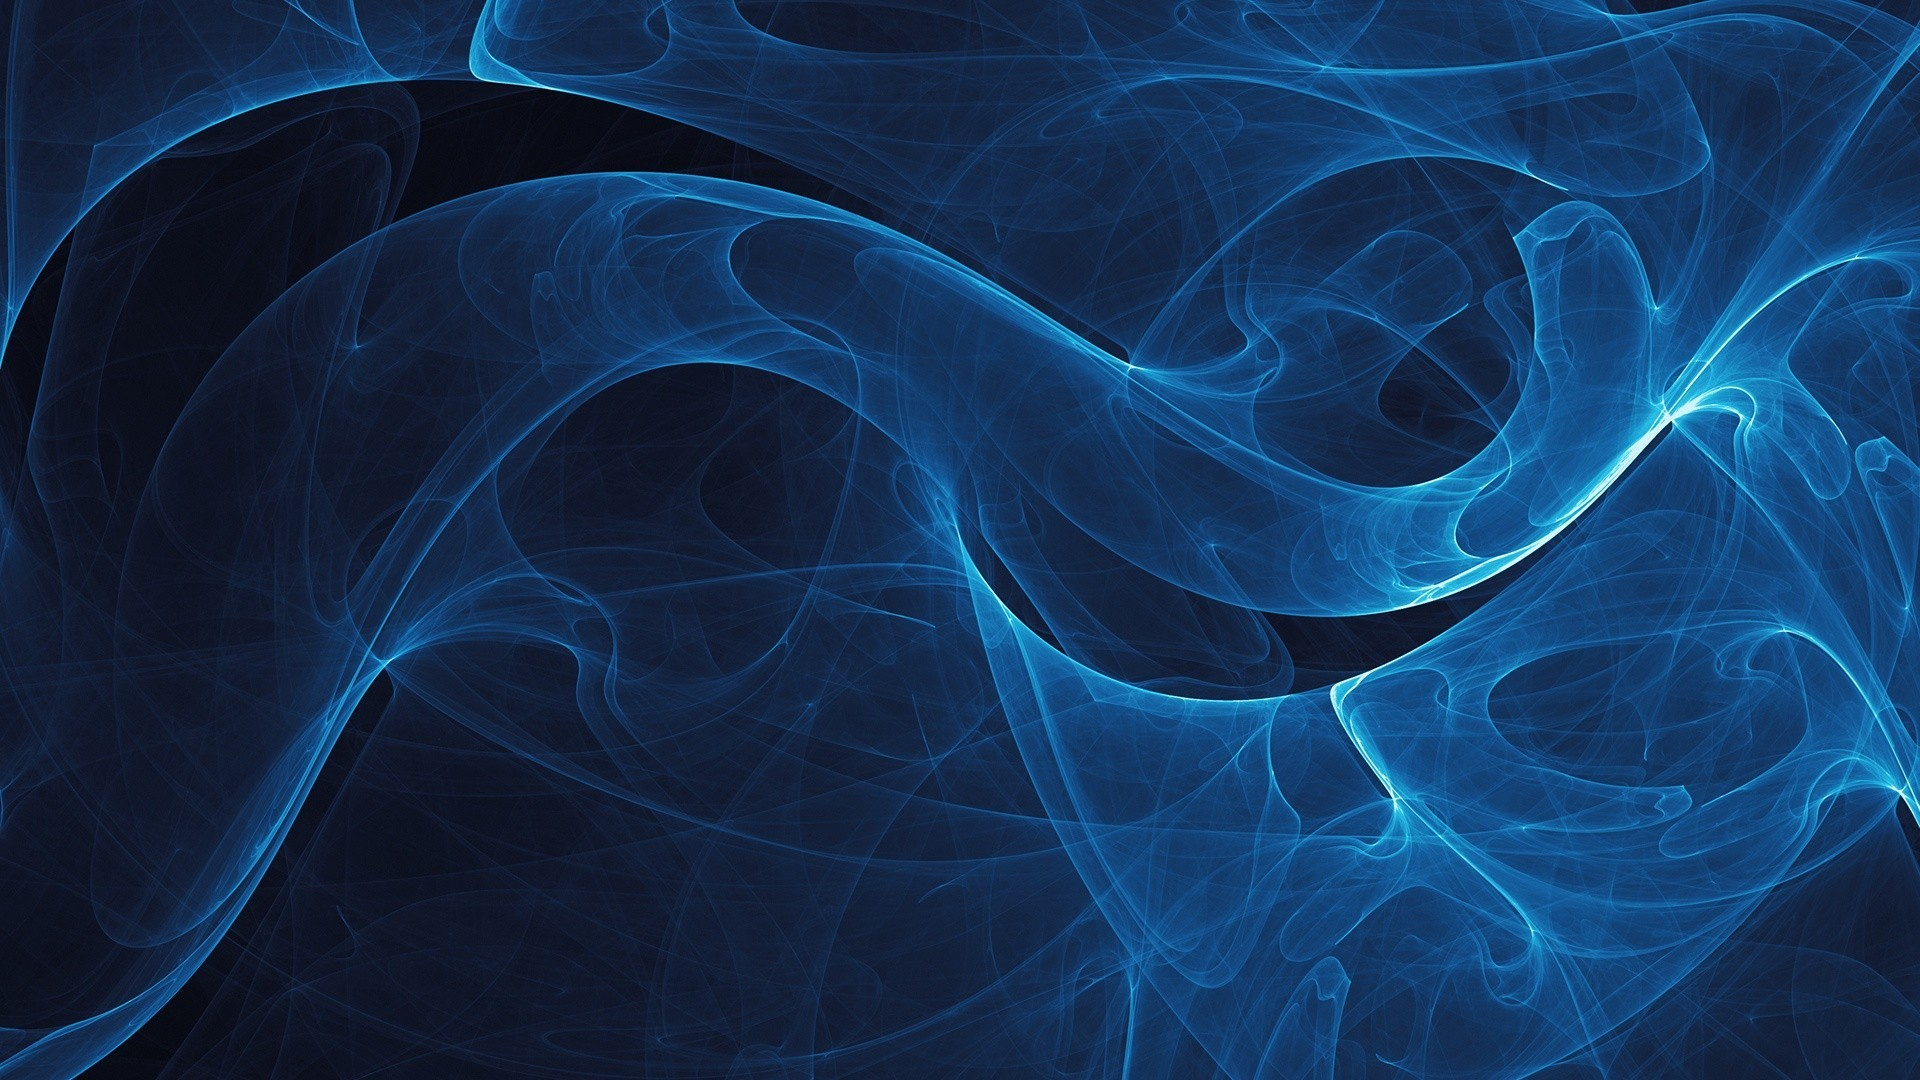 Blue Swirl Ipad Wallpaper Background And Theme: 42+ Cool Powerpoint Backgrounds ·① Download Free Awesome